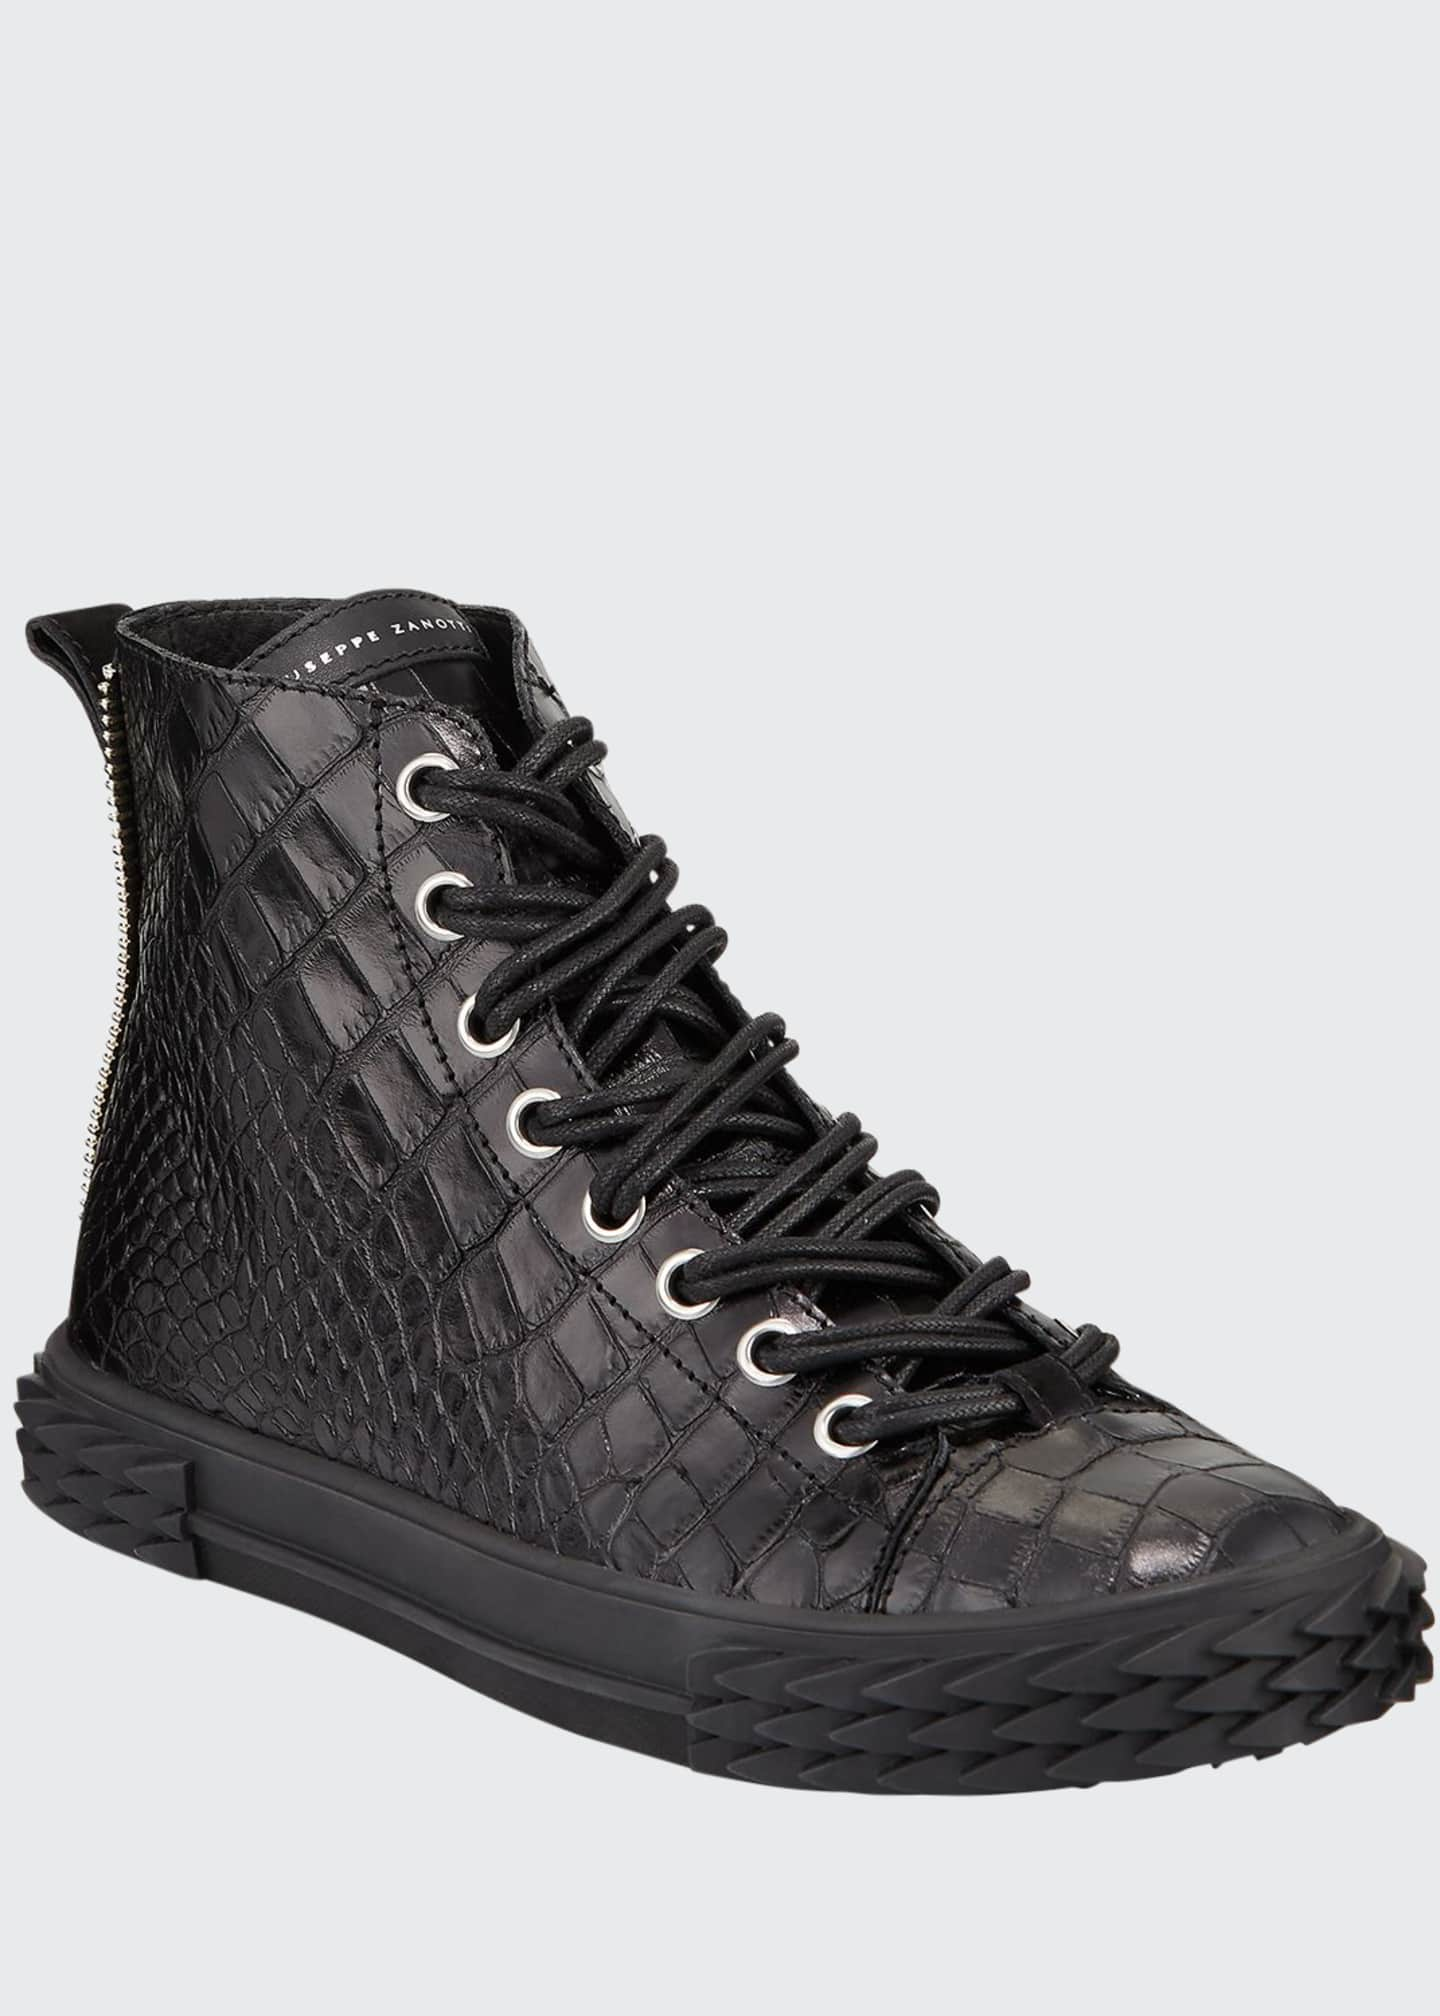 Image 1 of 3: Men's Blabber Croc-Embossed High-Top Sneakers